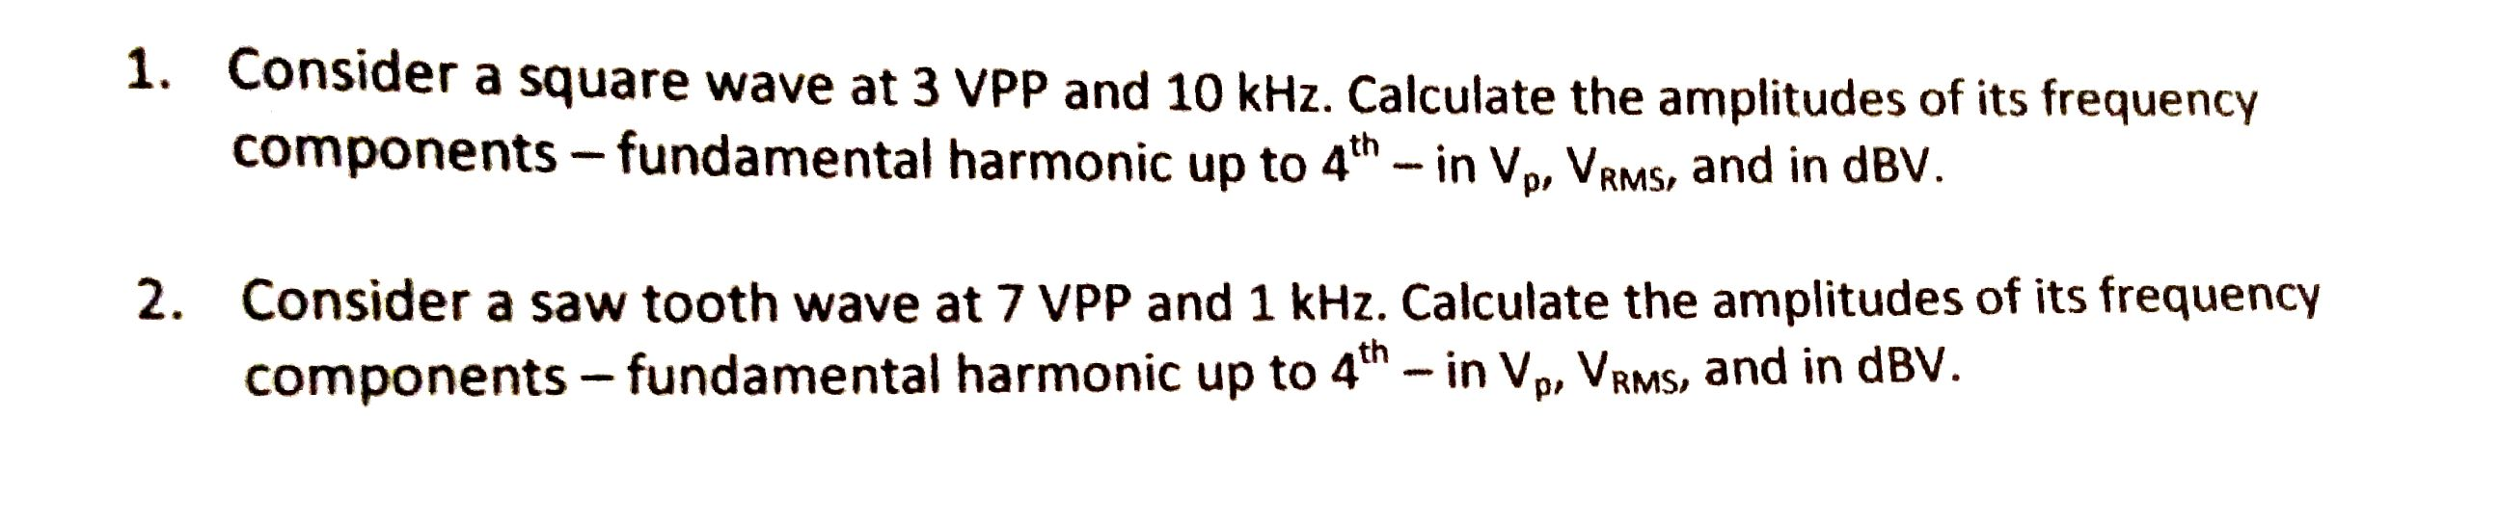 Consider a square wave at 3 VPP and 10 kHz. Calcul